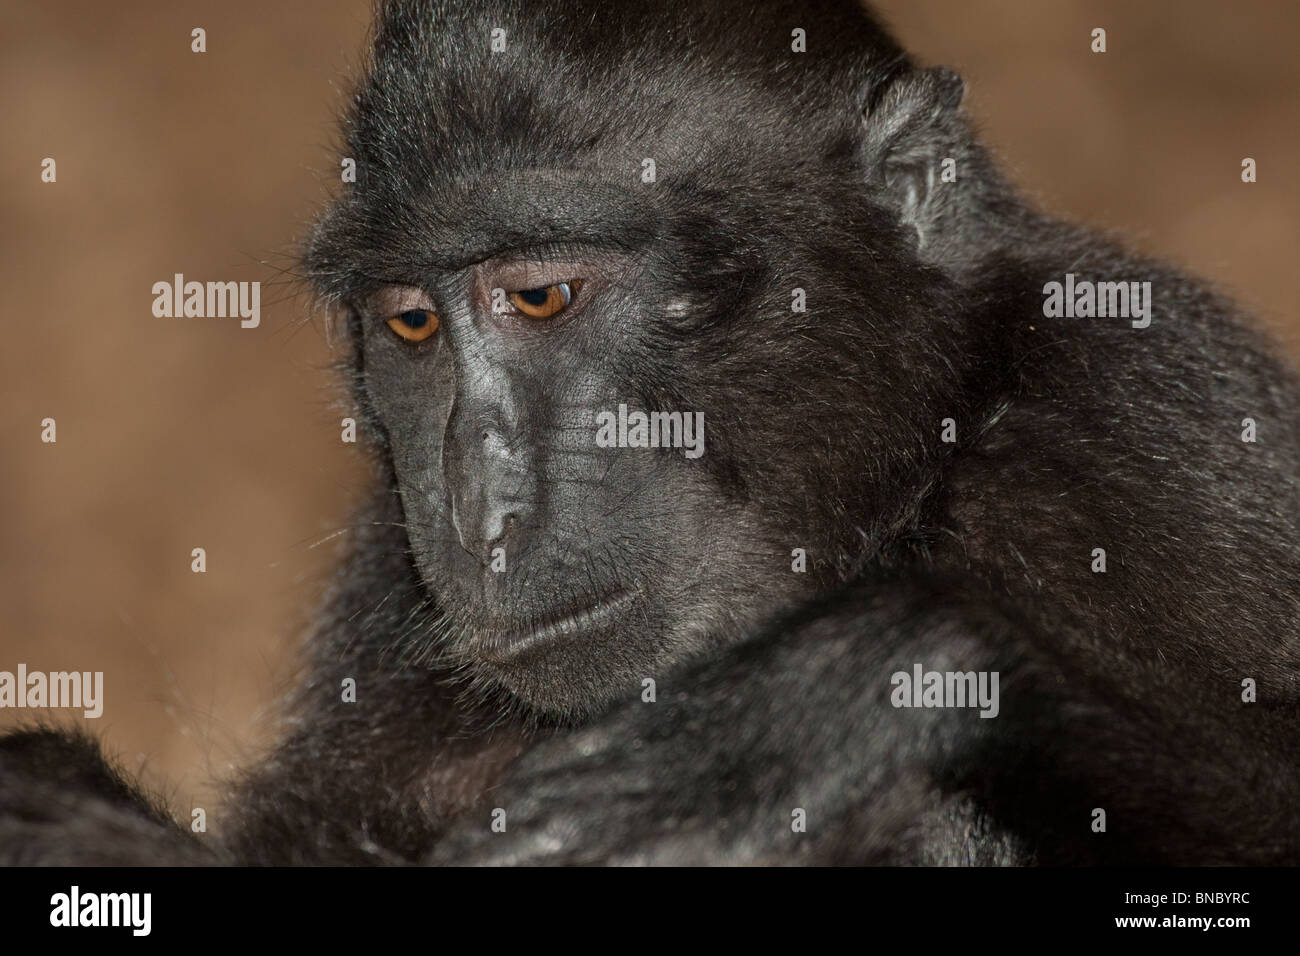 Sulawesi Crested Macaque, Macaca nigra, from Indonesia. - Stock Image